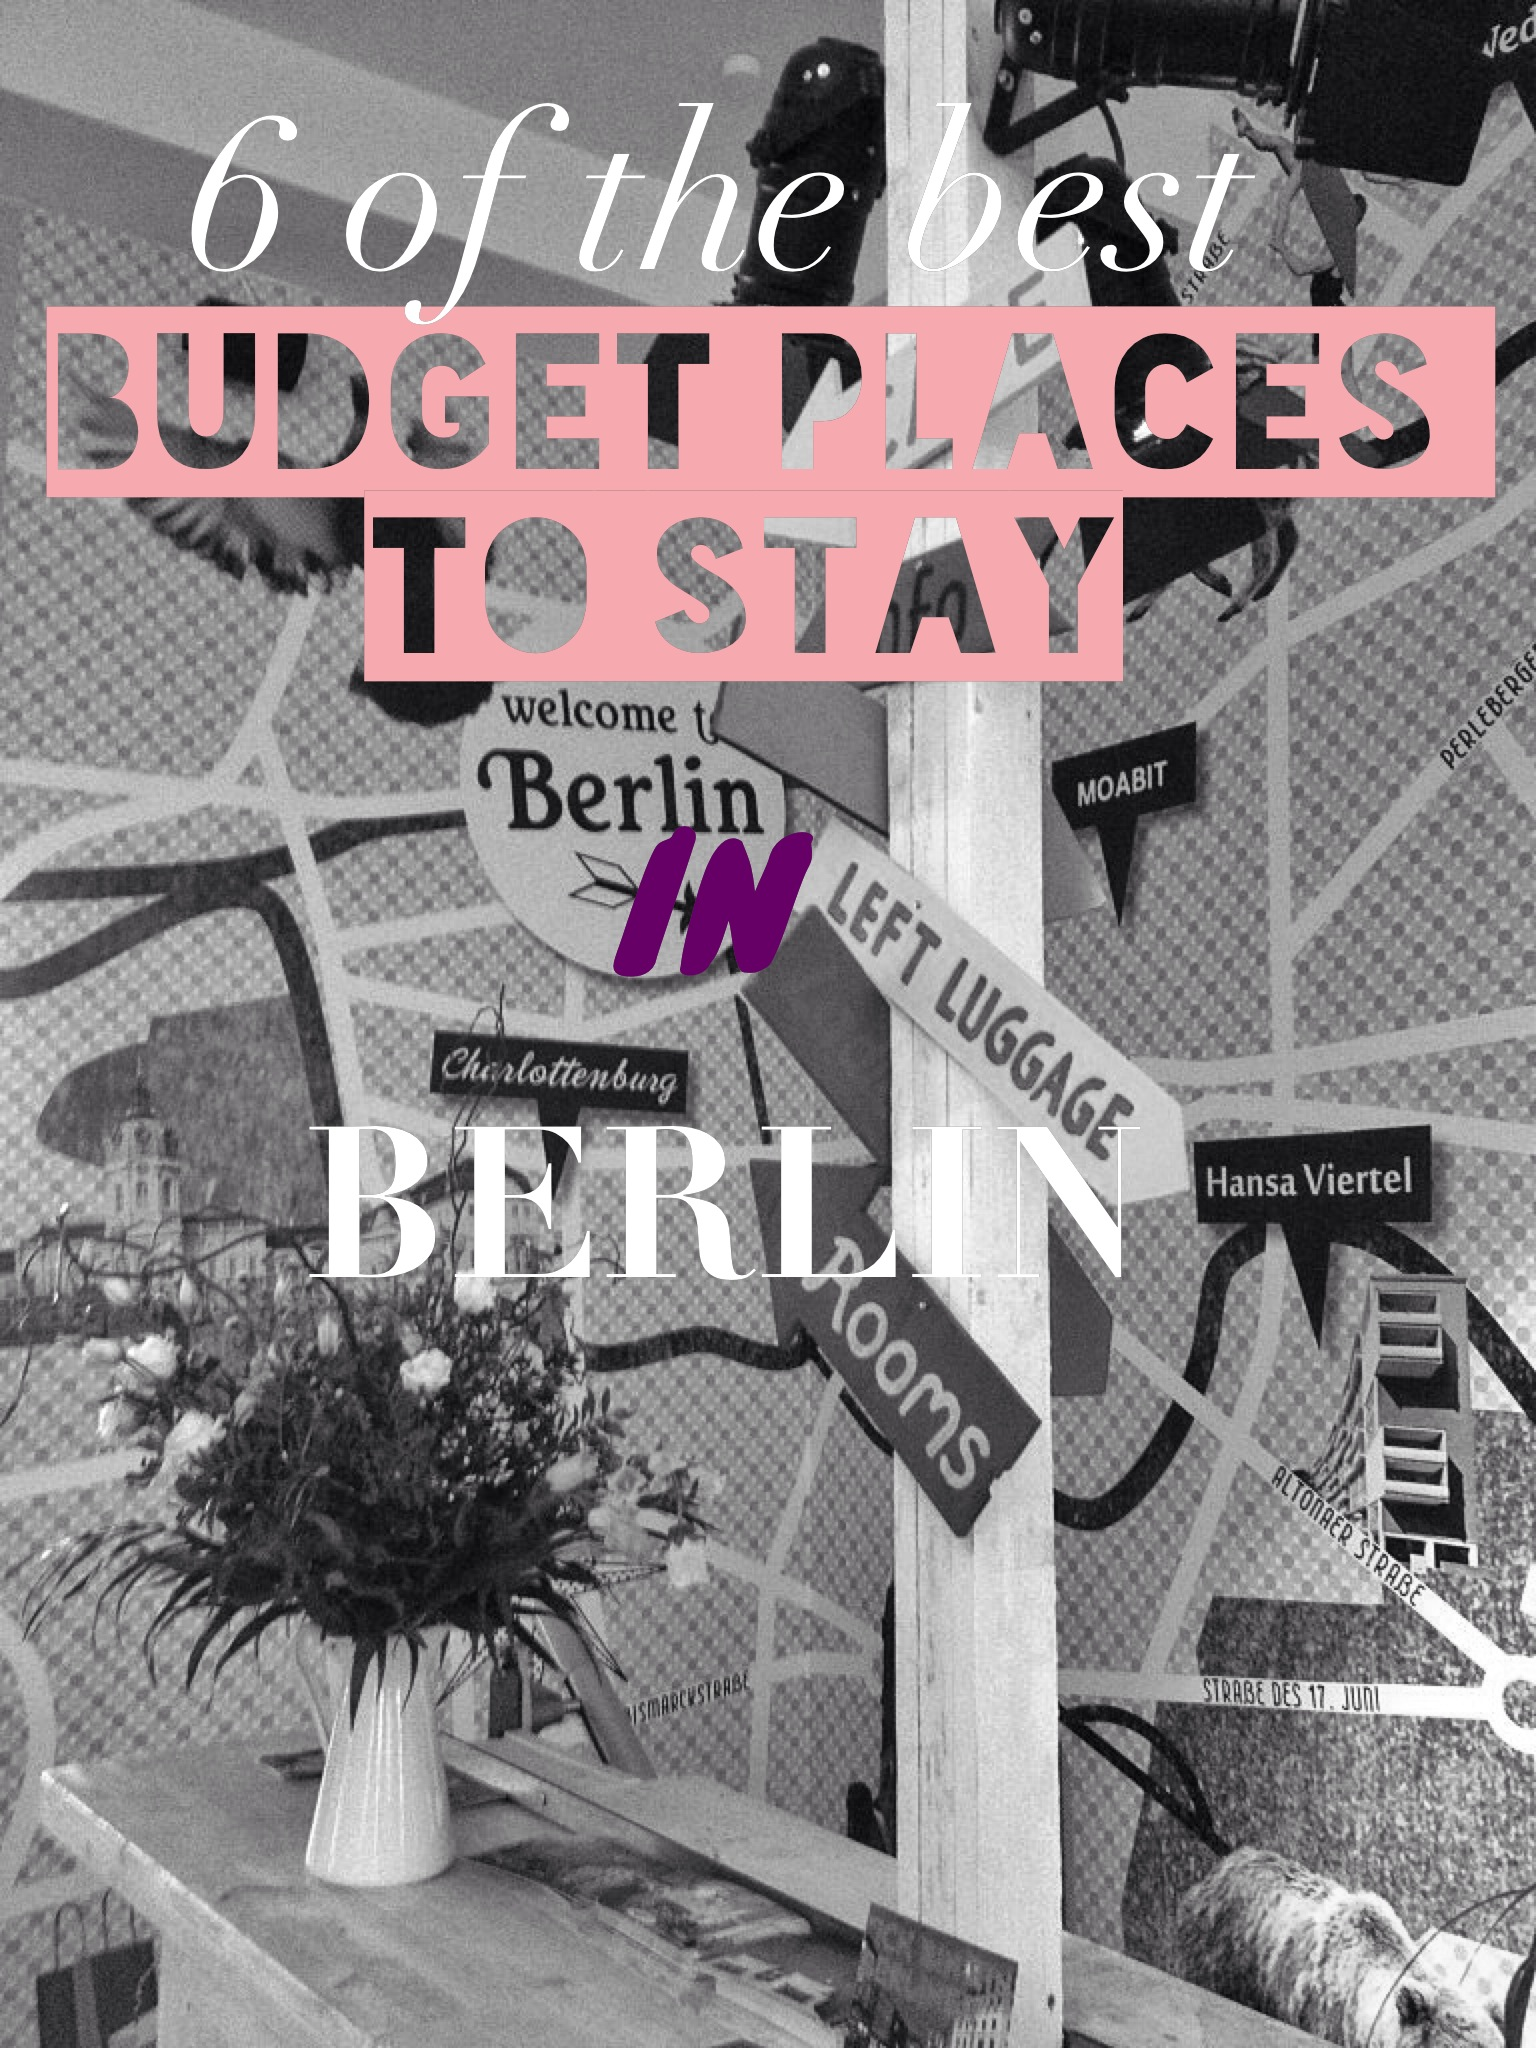 Best Budget Places Berlin